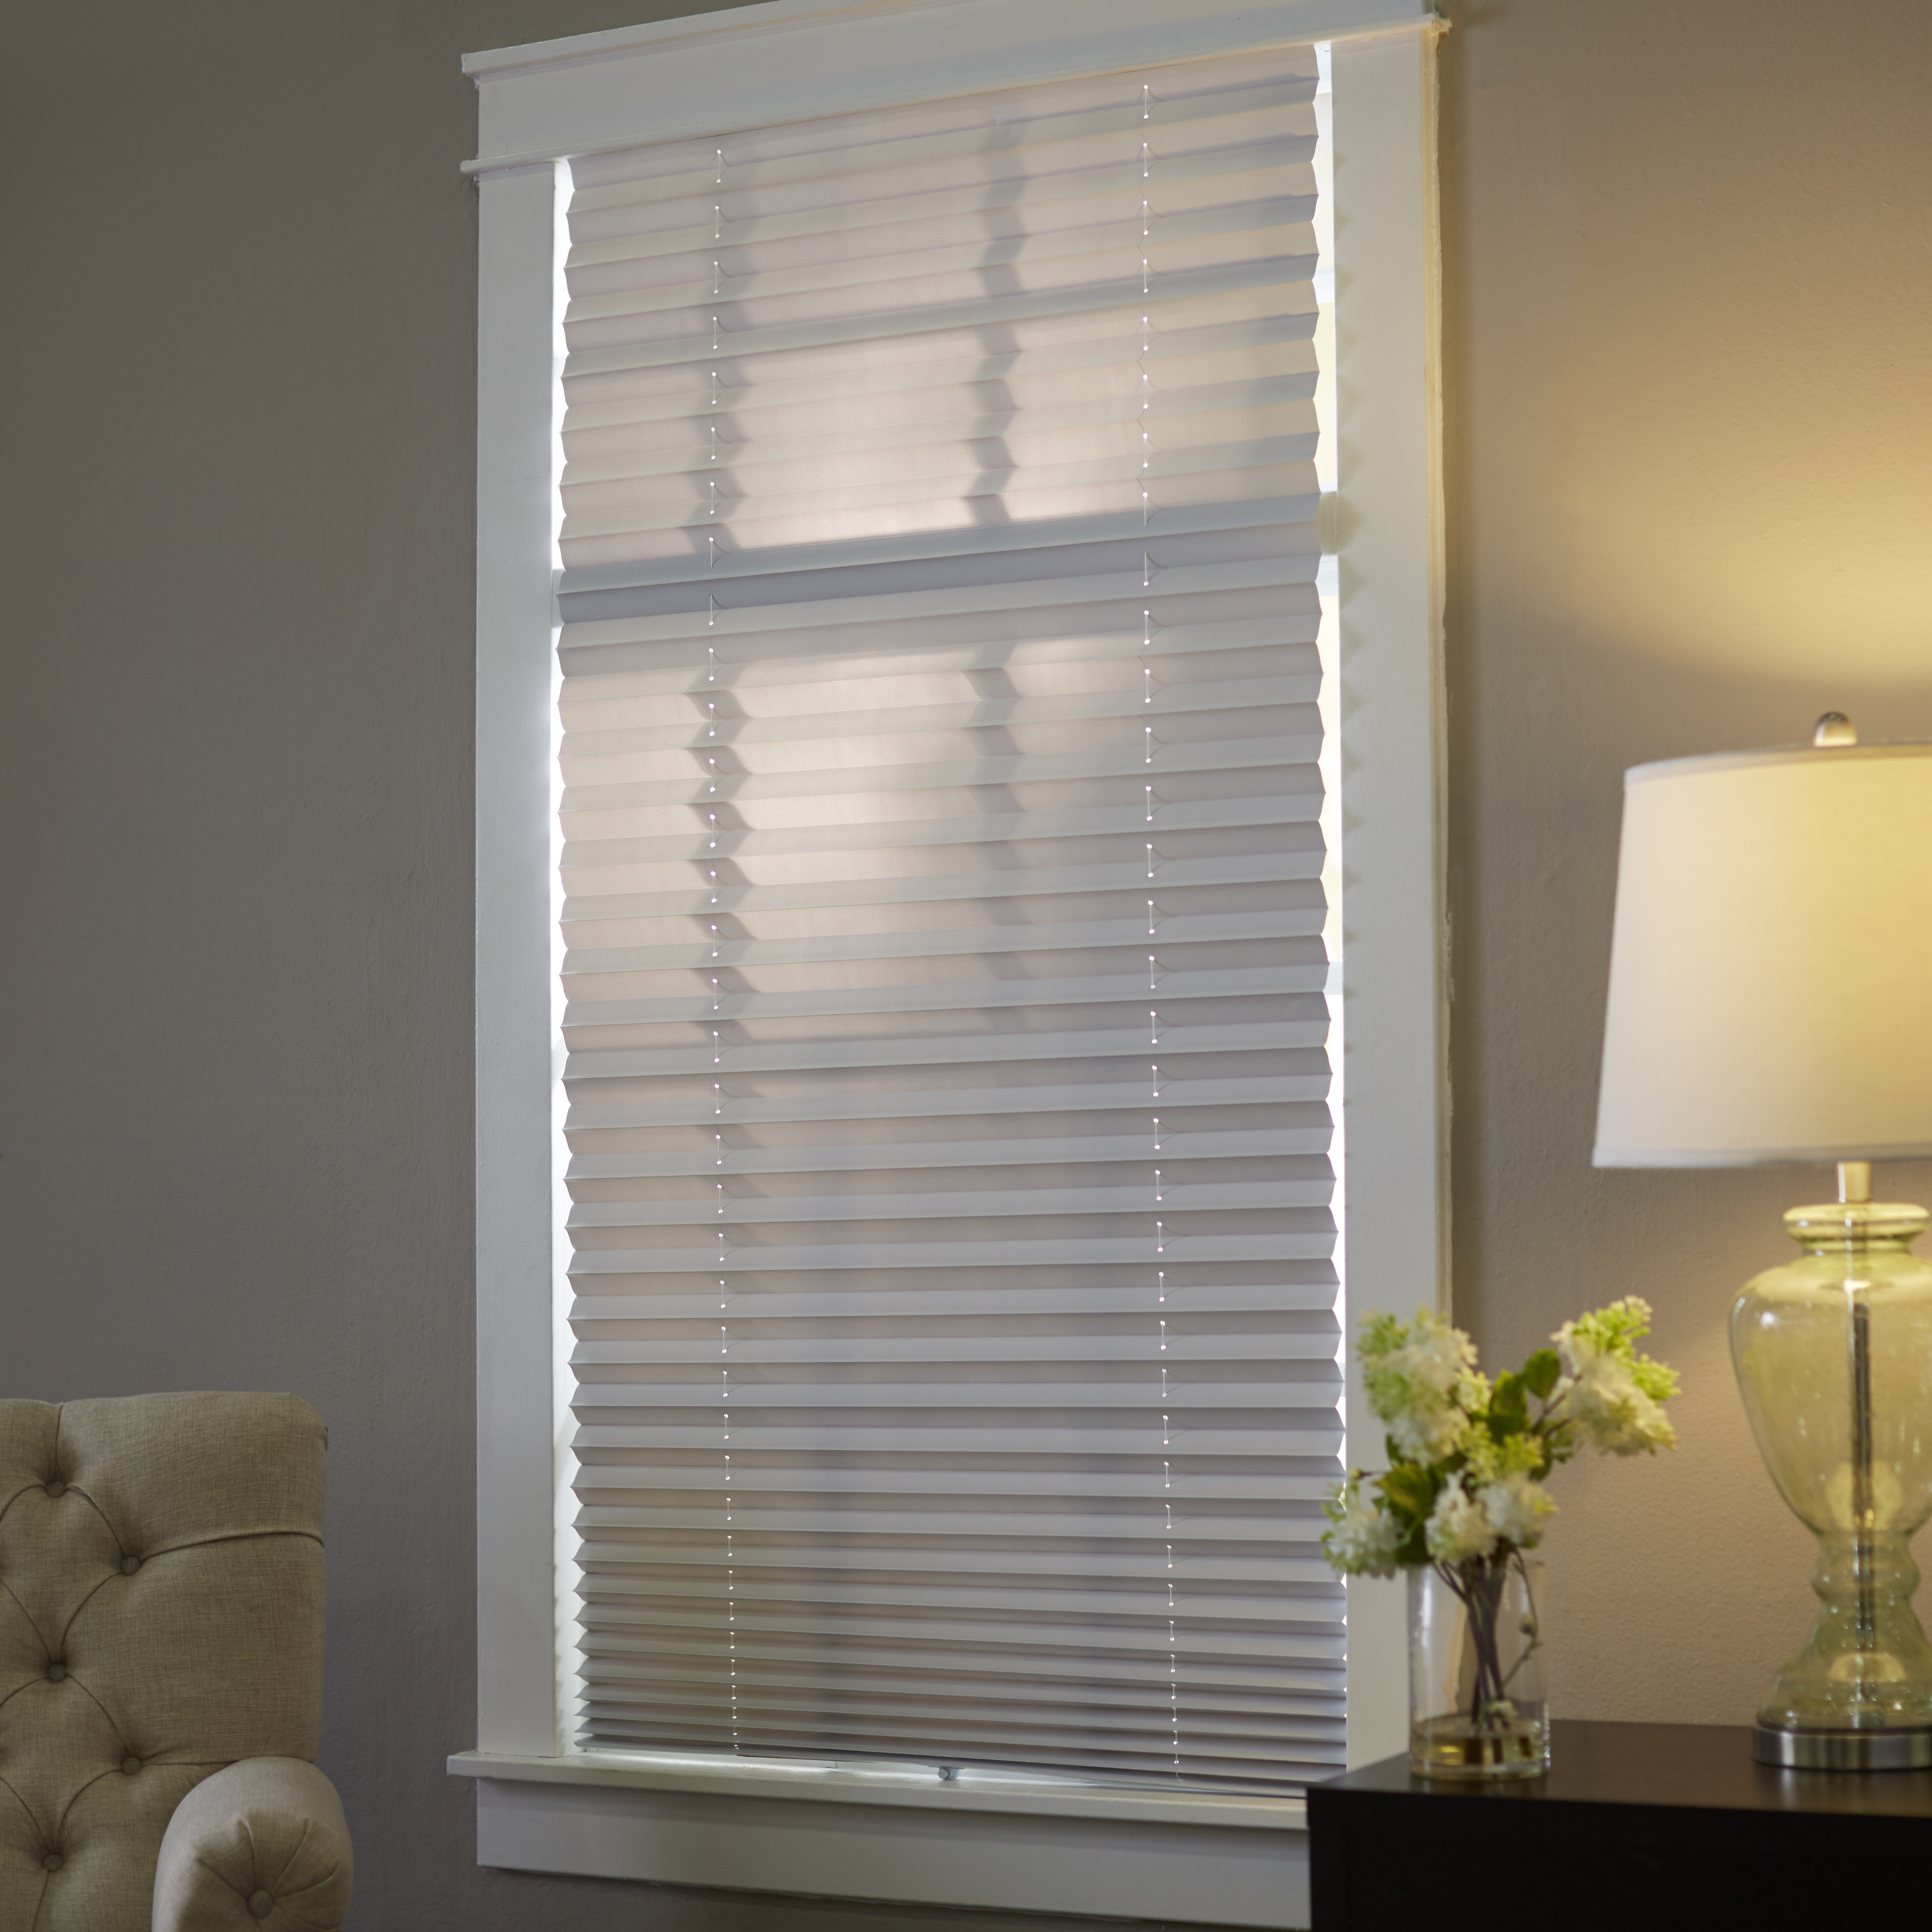 Bali Roman Shades | Menards Cincinnati | Menards Window Blinds